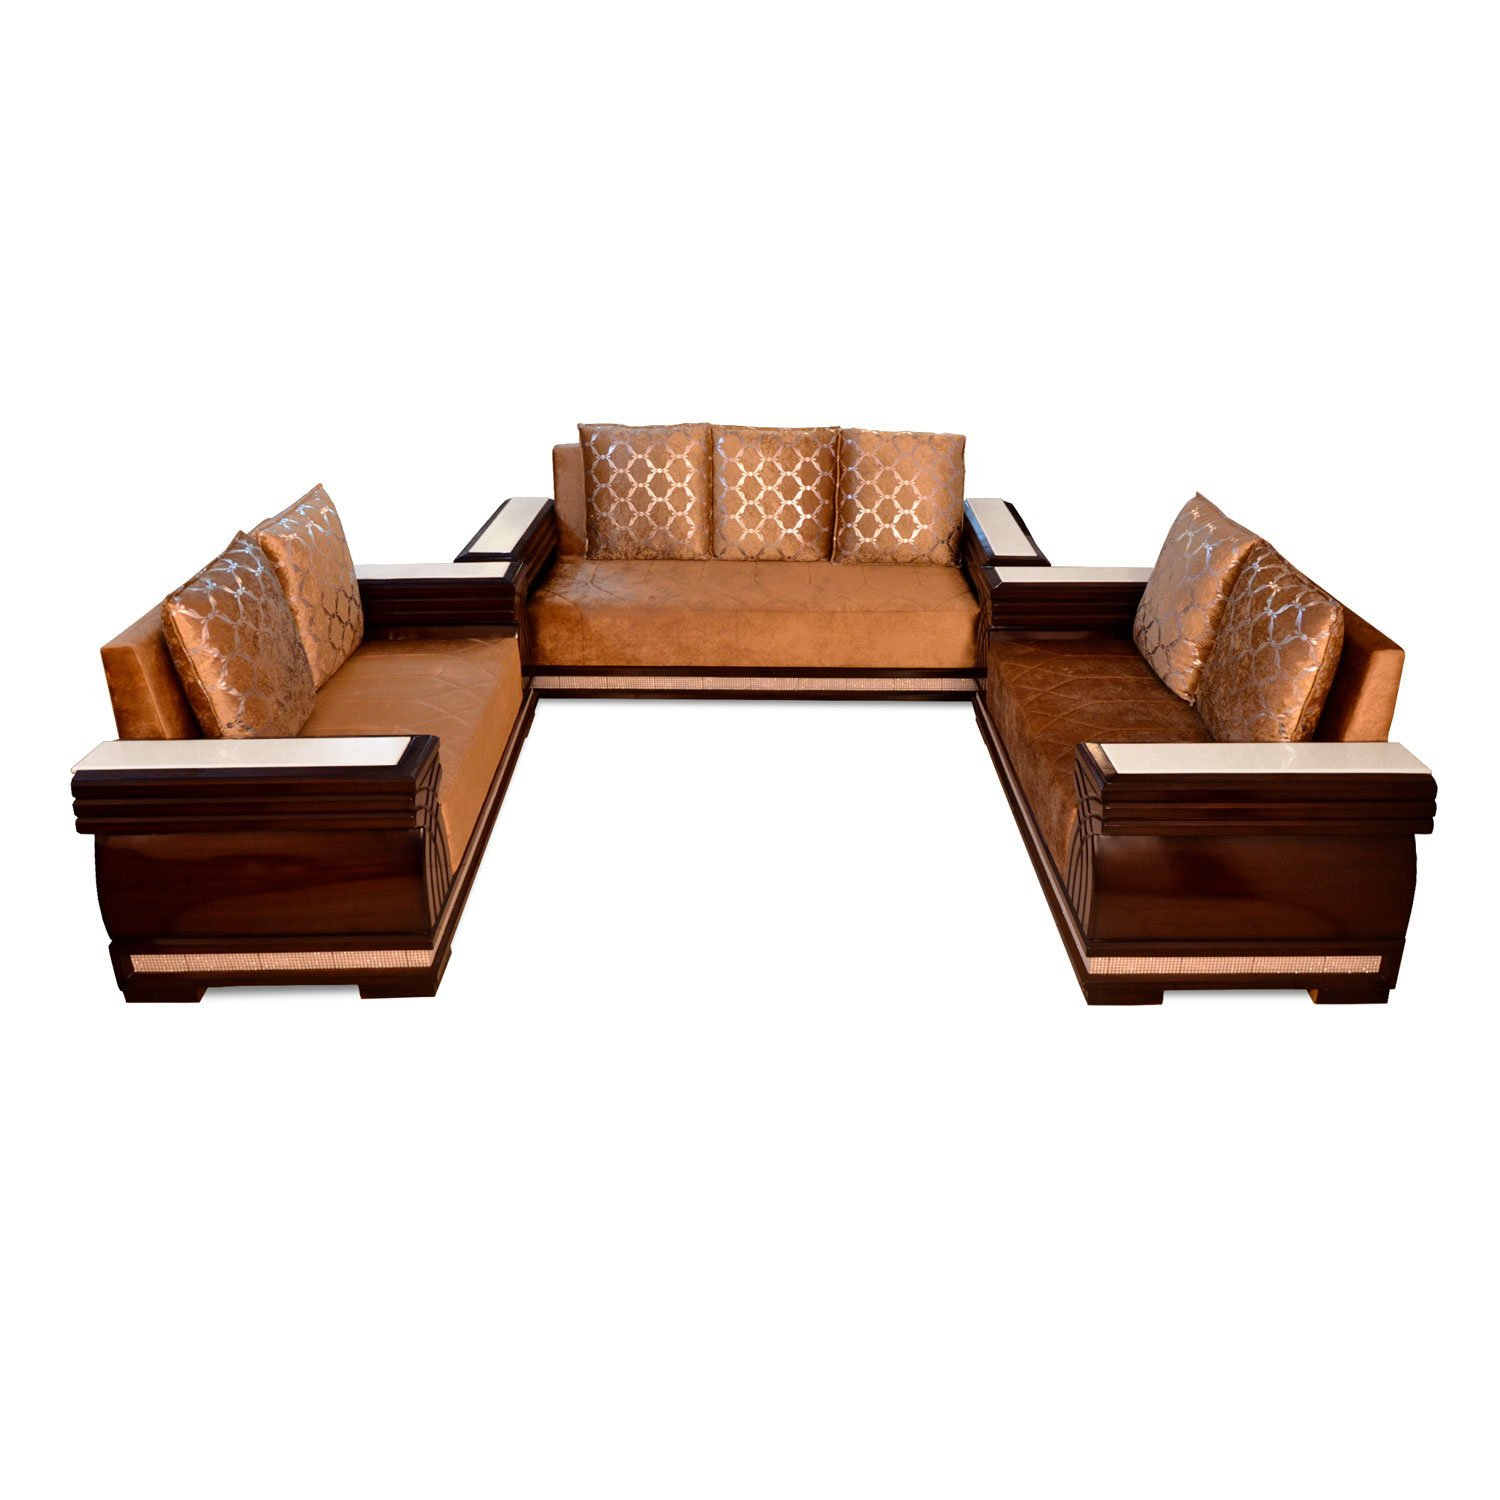 7 seater sofa set living room furniture sets affordable for 7 seater living room